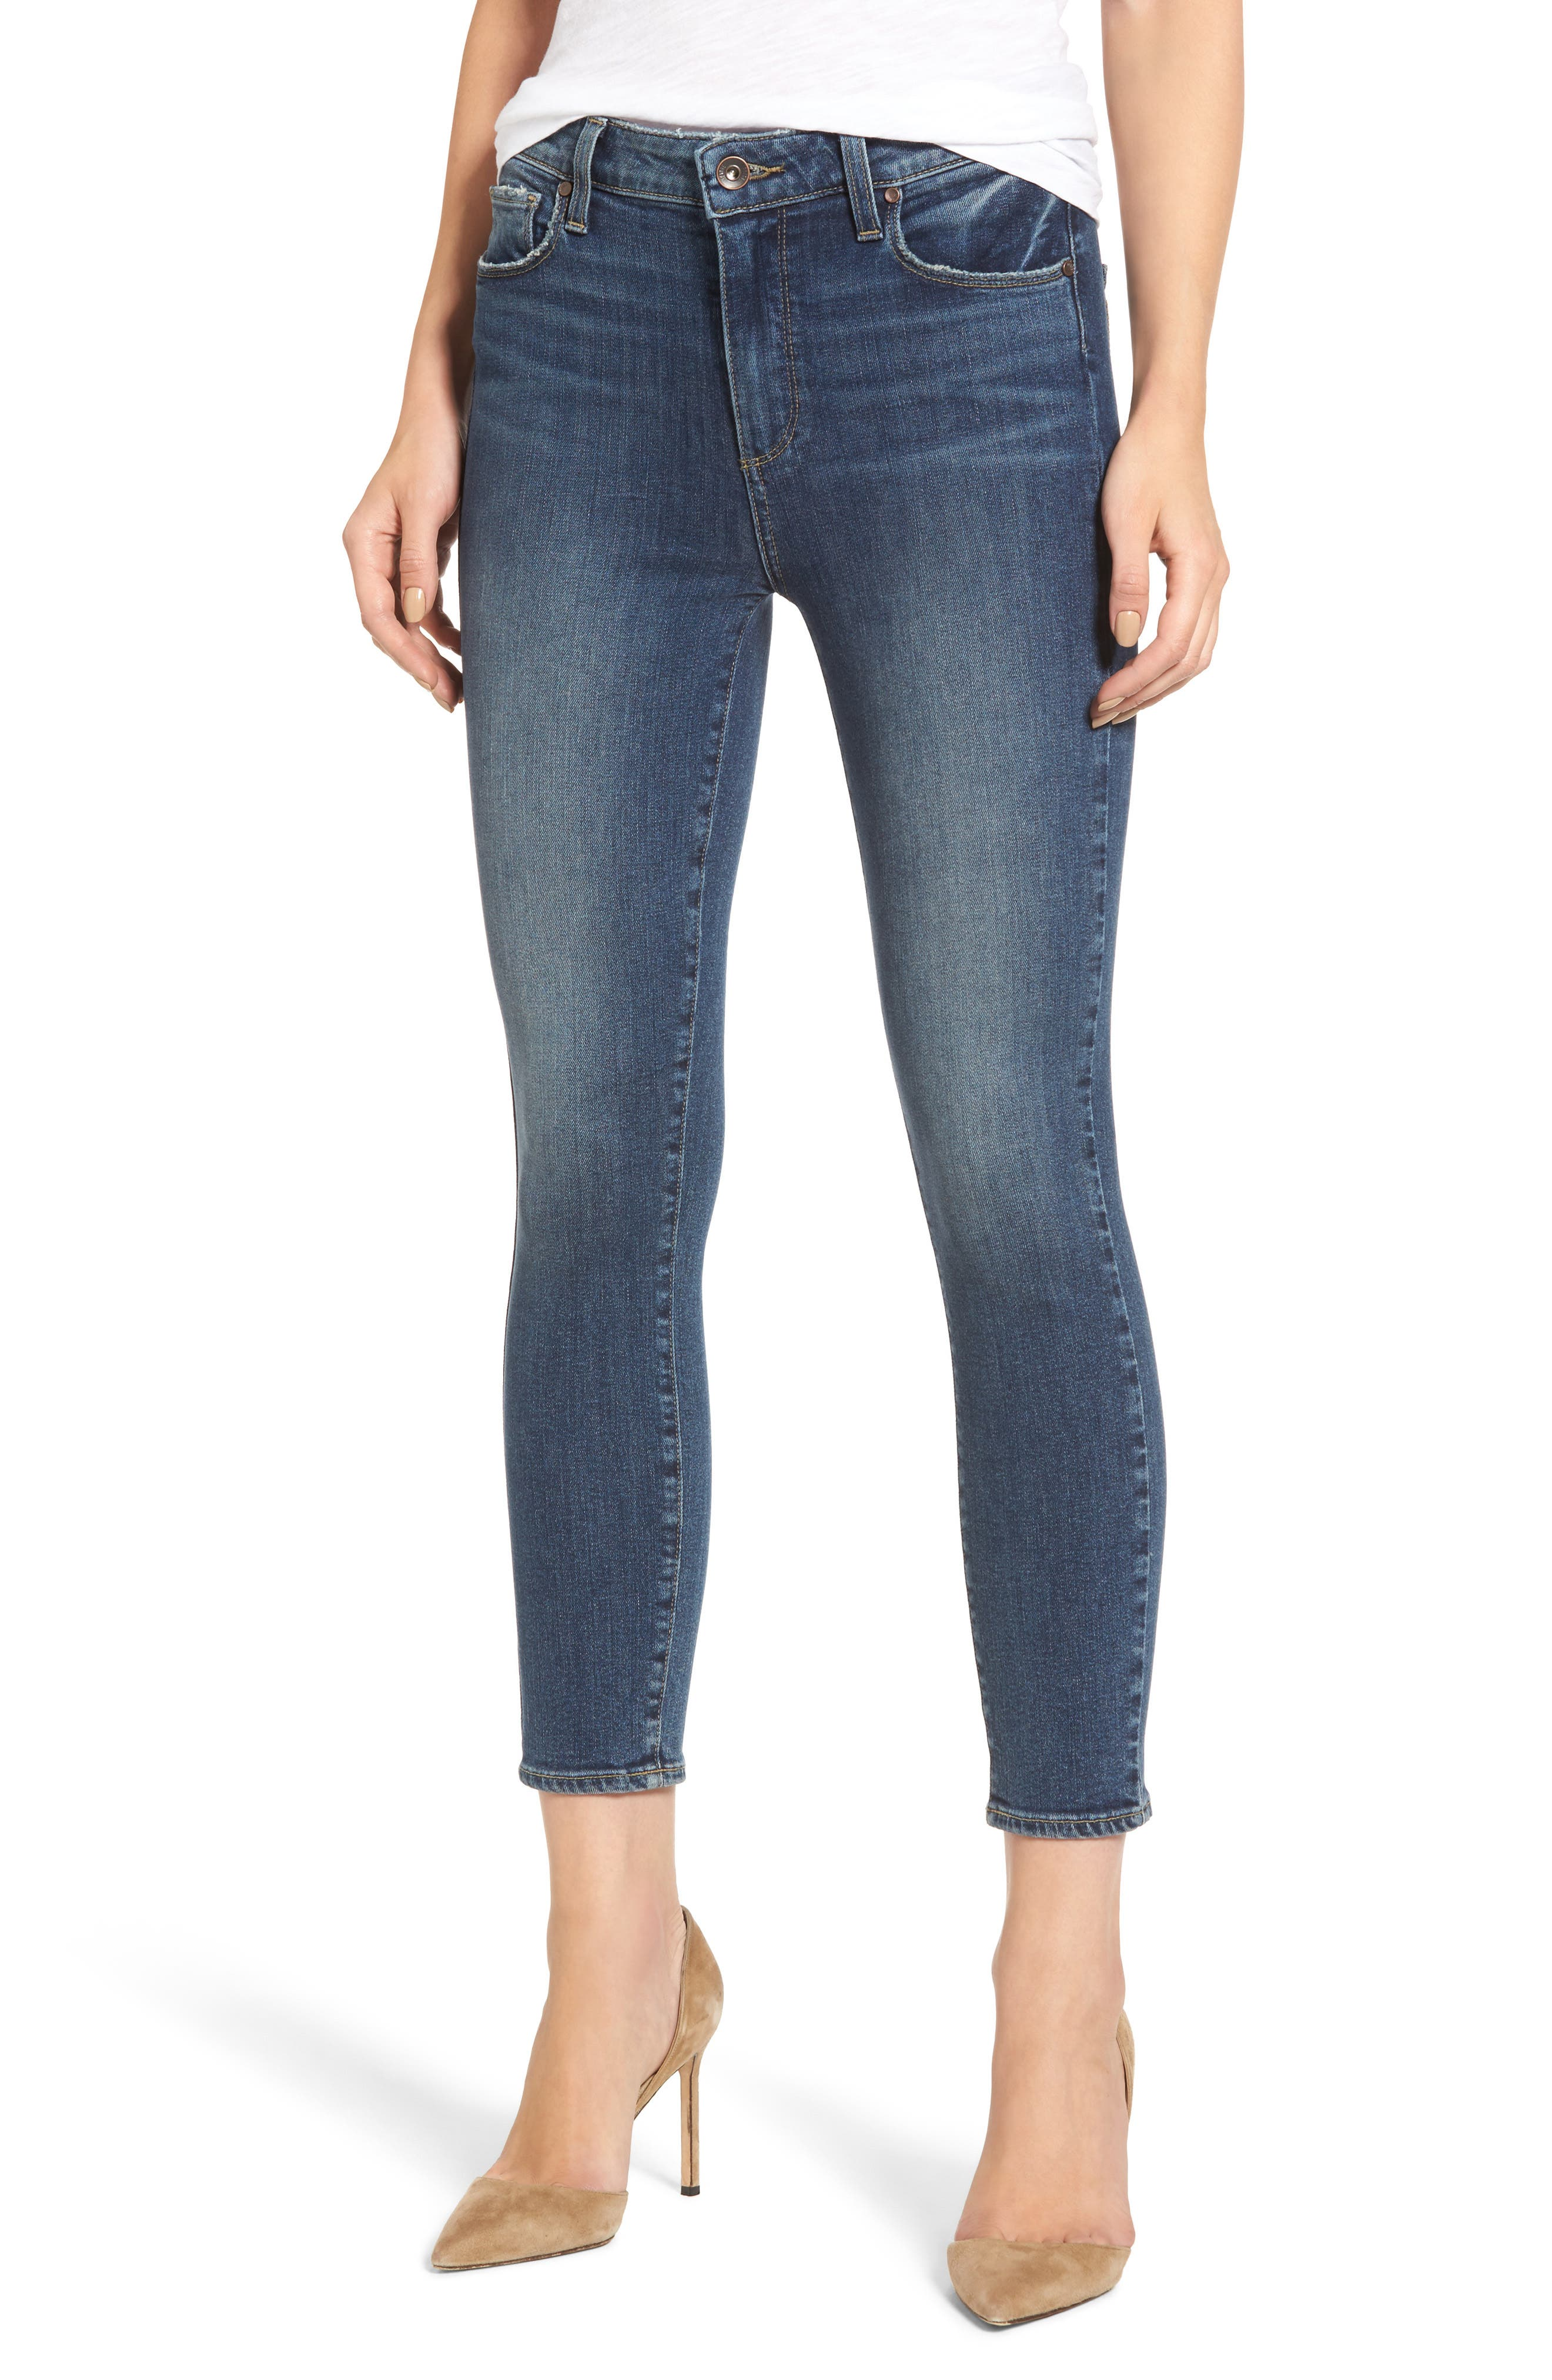 Hoxton High Waist Crop Skinny Jeans,                         Main,                         color, 400